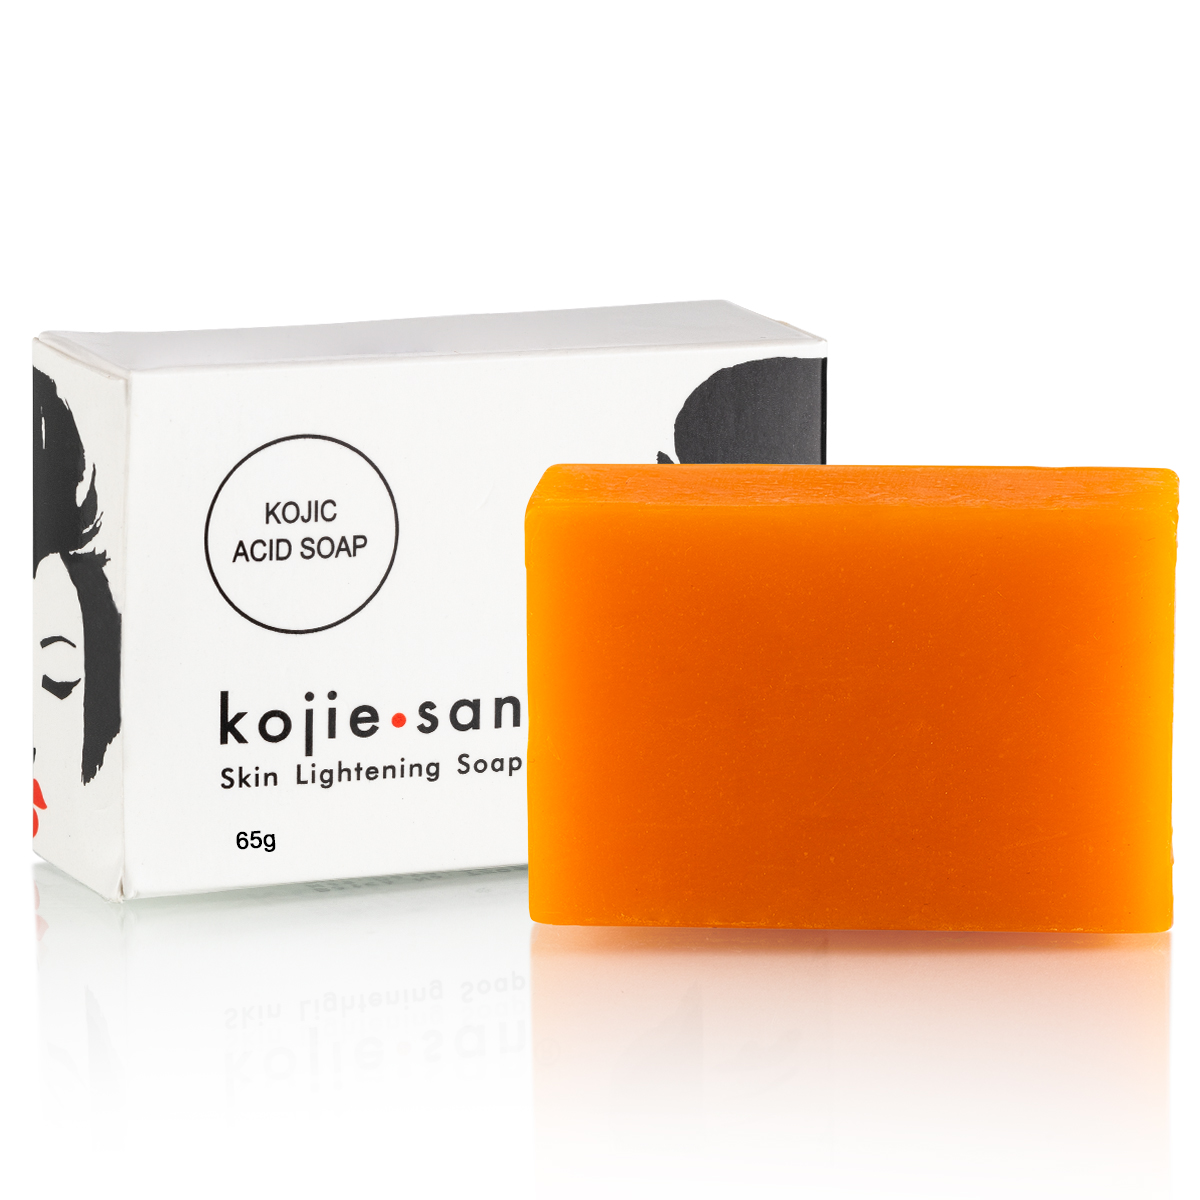 Kojie San Skin Lightening Soap (65g)